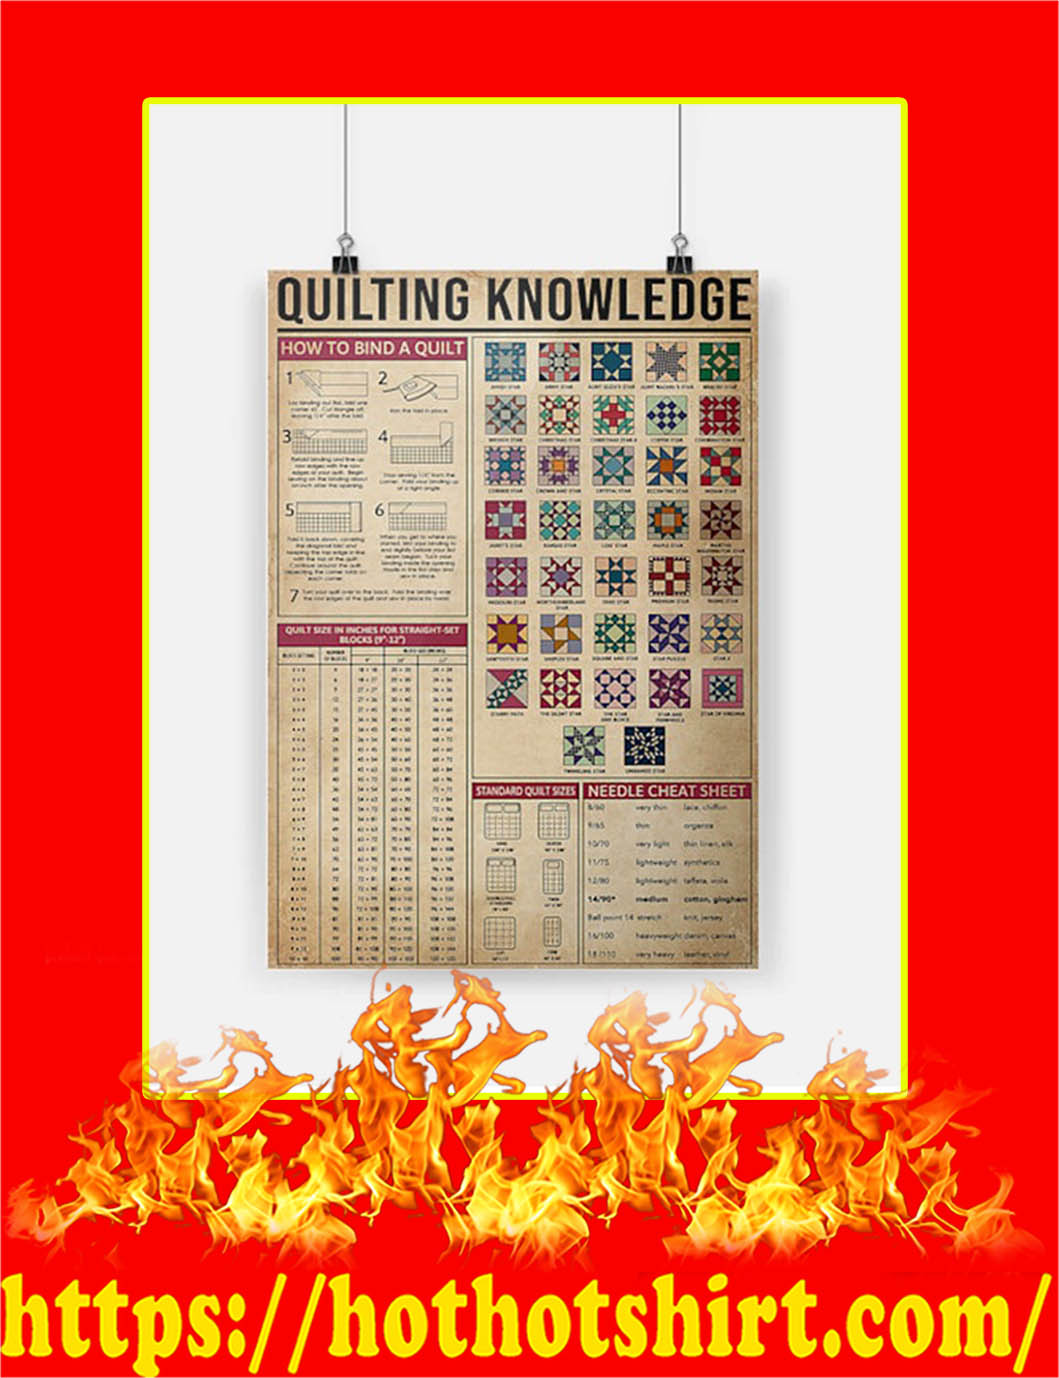 Quilting Knowledge Poster - A1